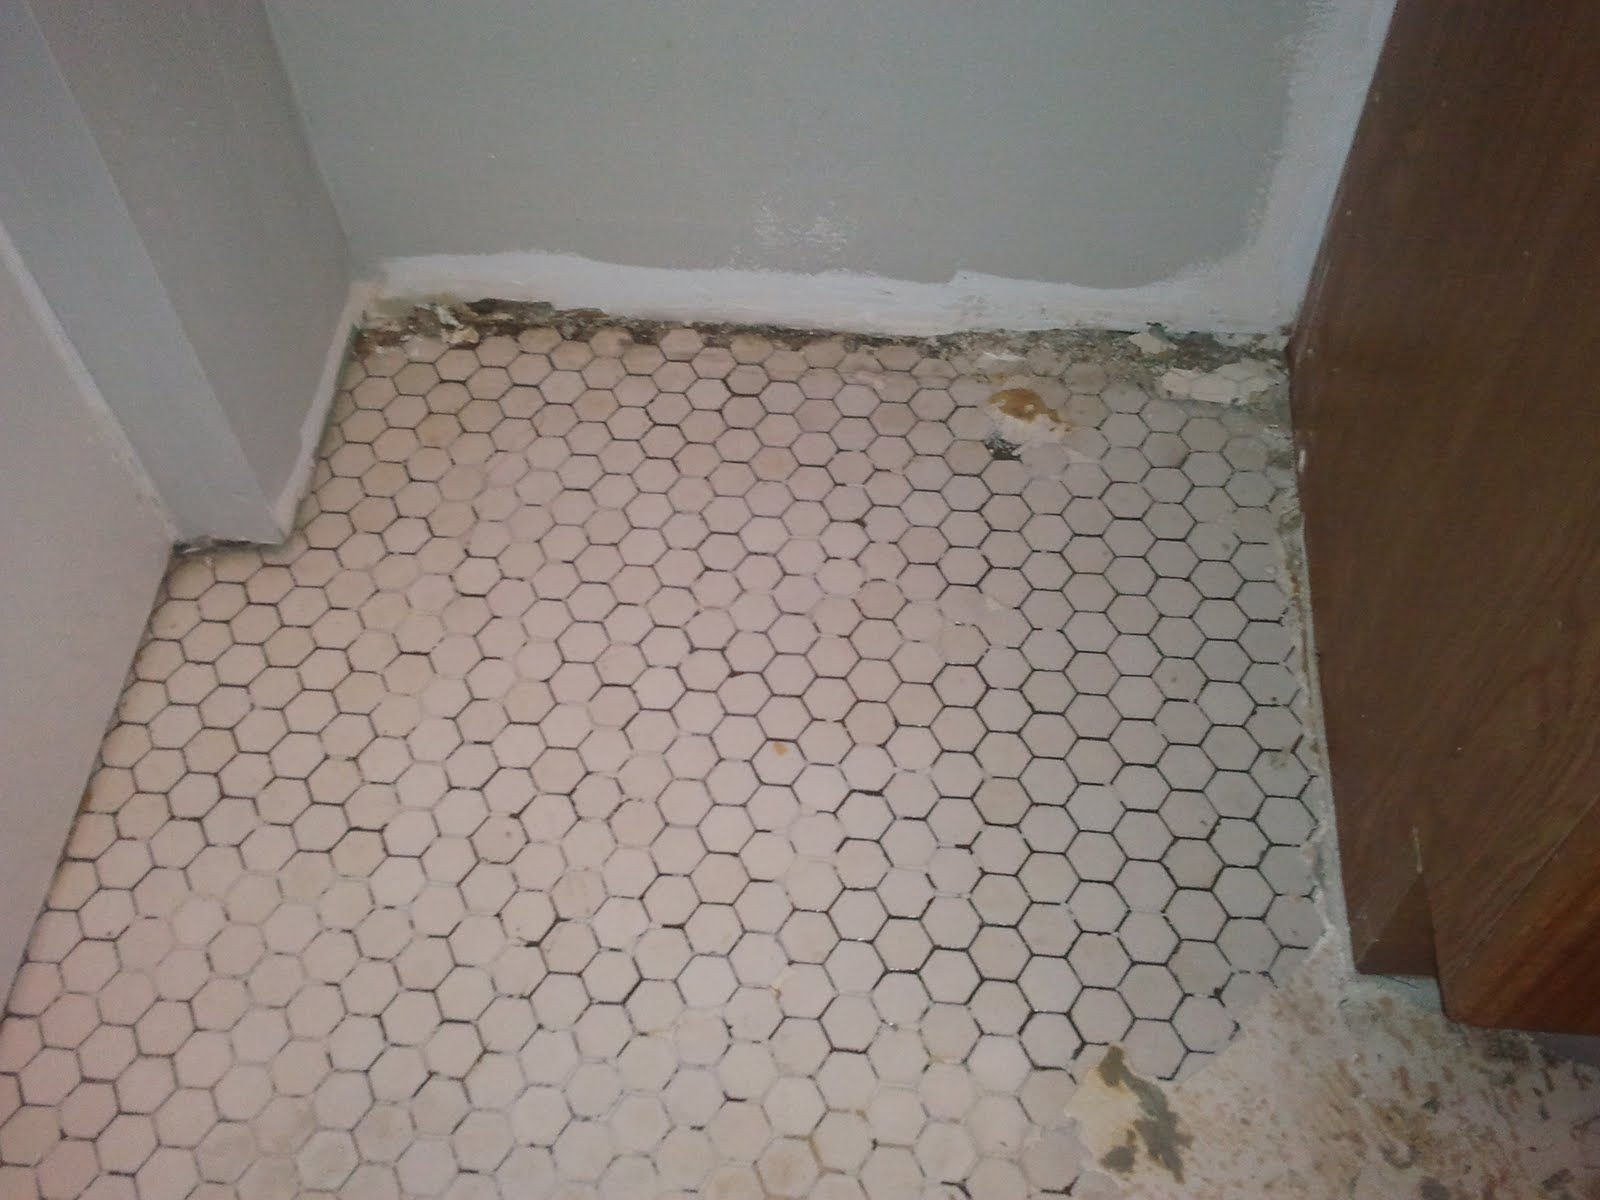 Sand paper and a fresh layer of grout it will look like new